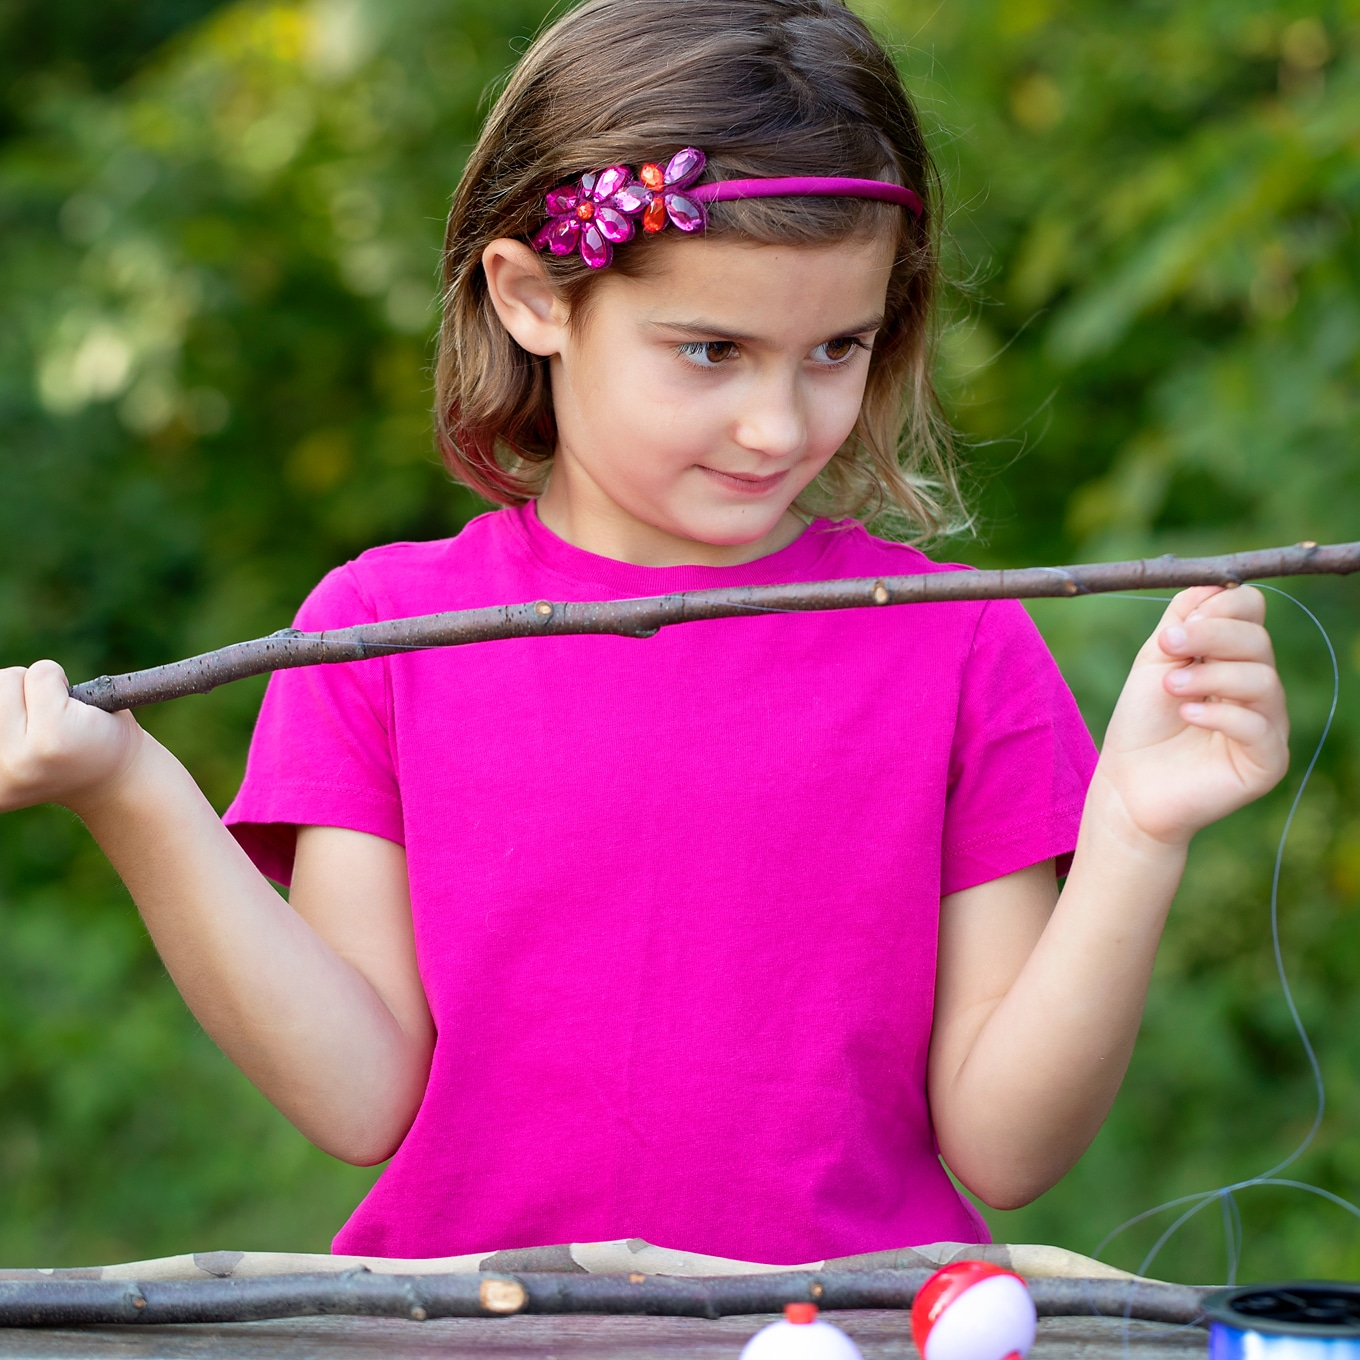 Child Making Classic Stick Fishing Pole